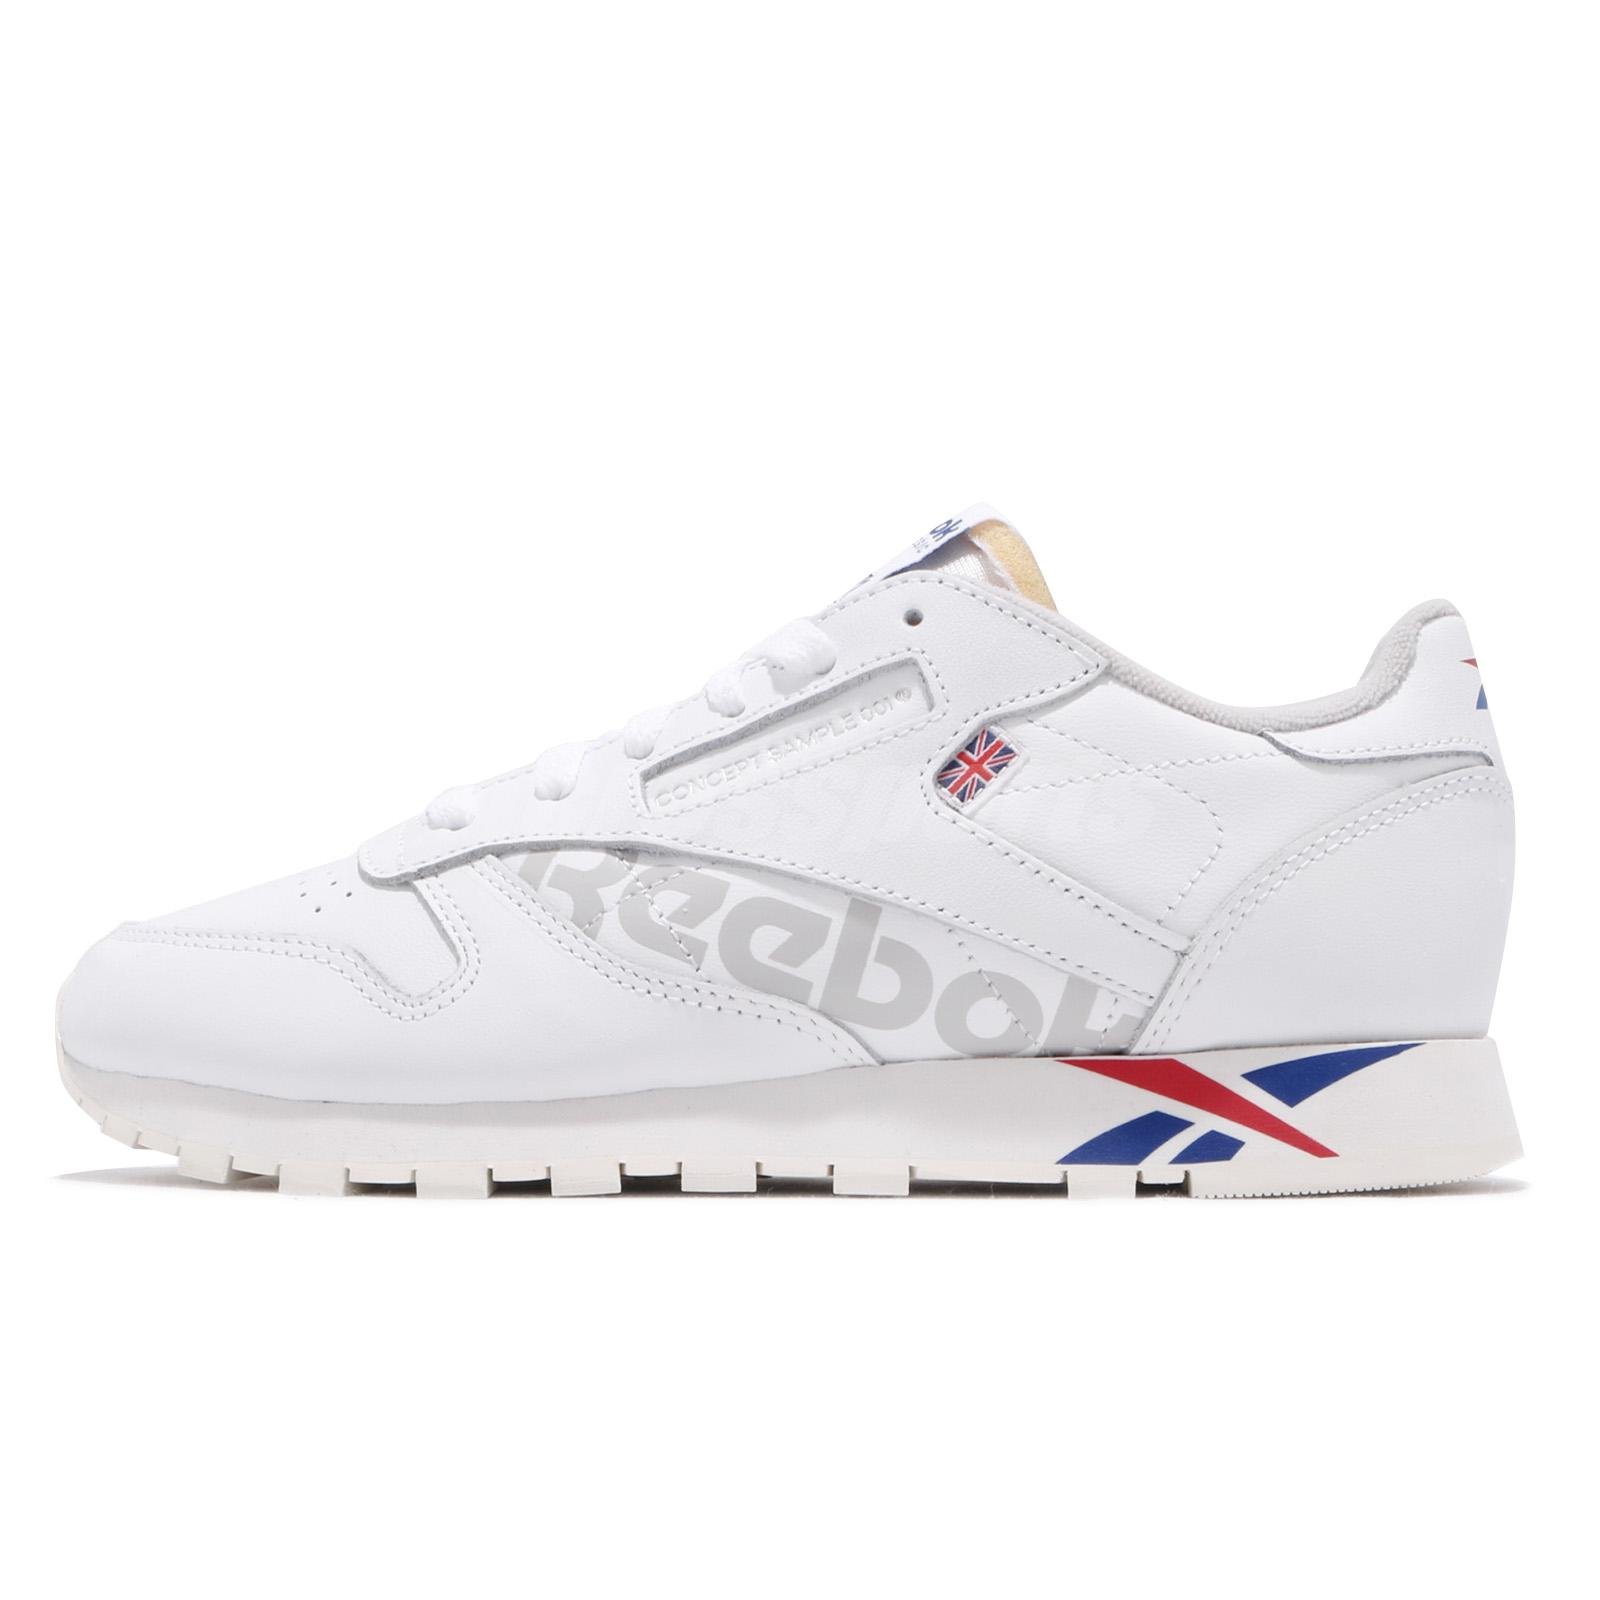 27f88719ca3 Reebok Classic Leather Altered MU White Dark Royal Red Grey Men Shoes DV4629